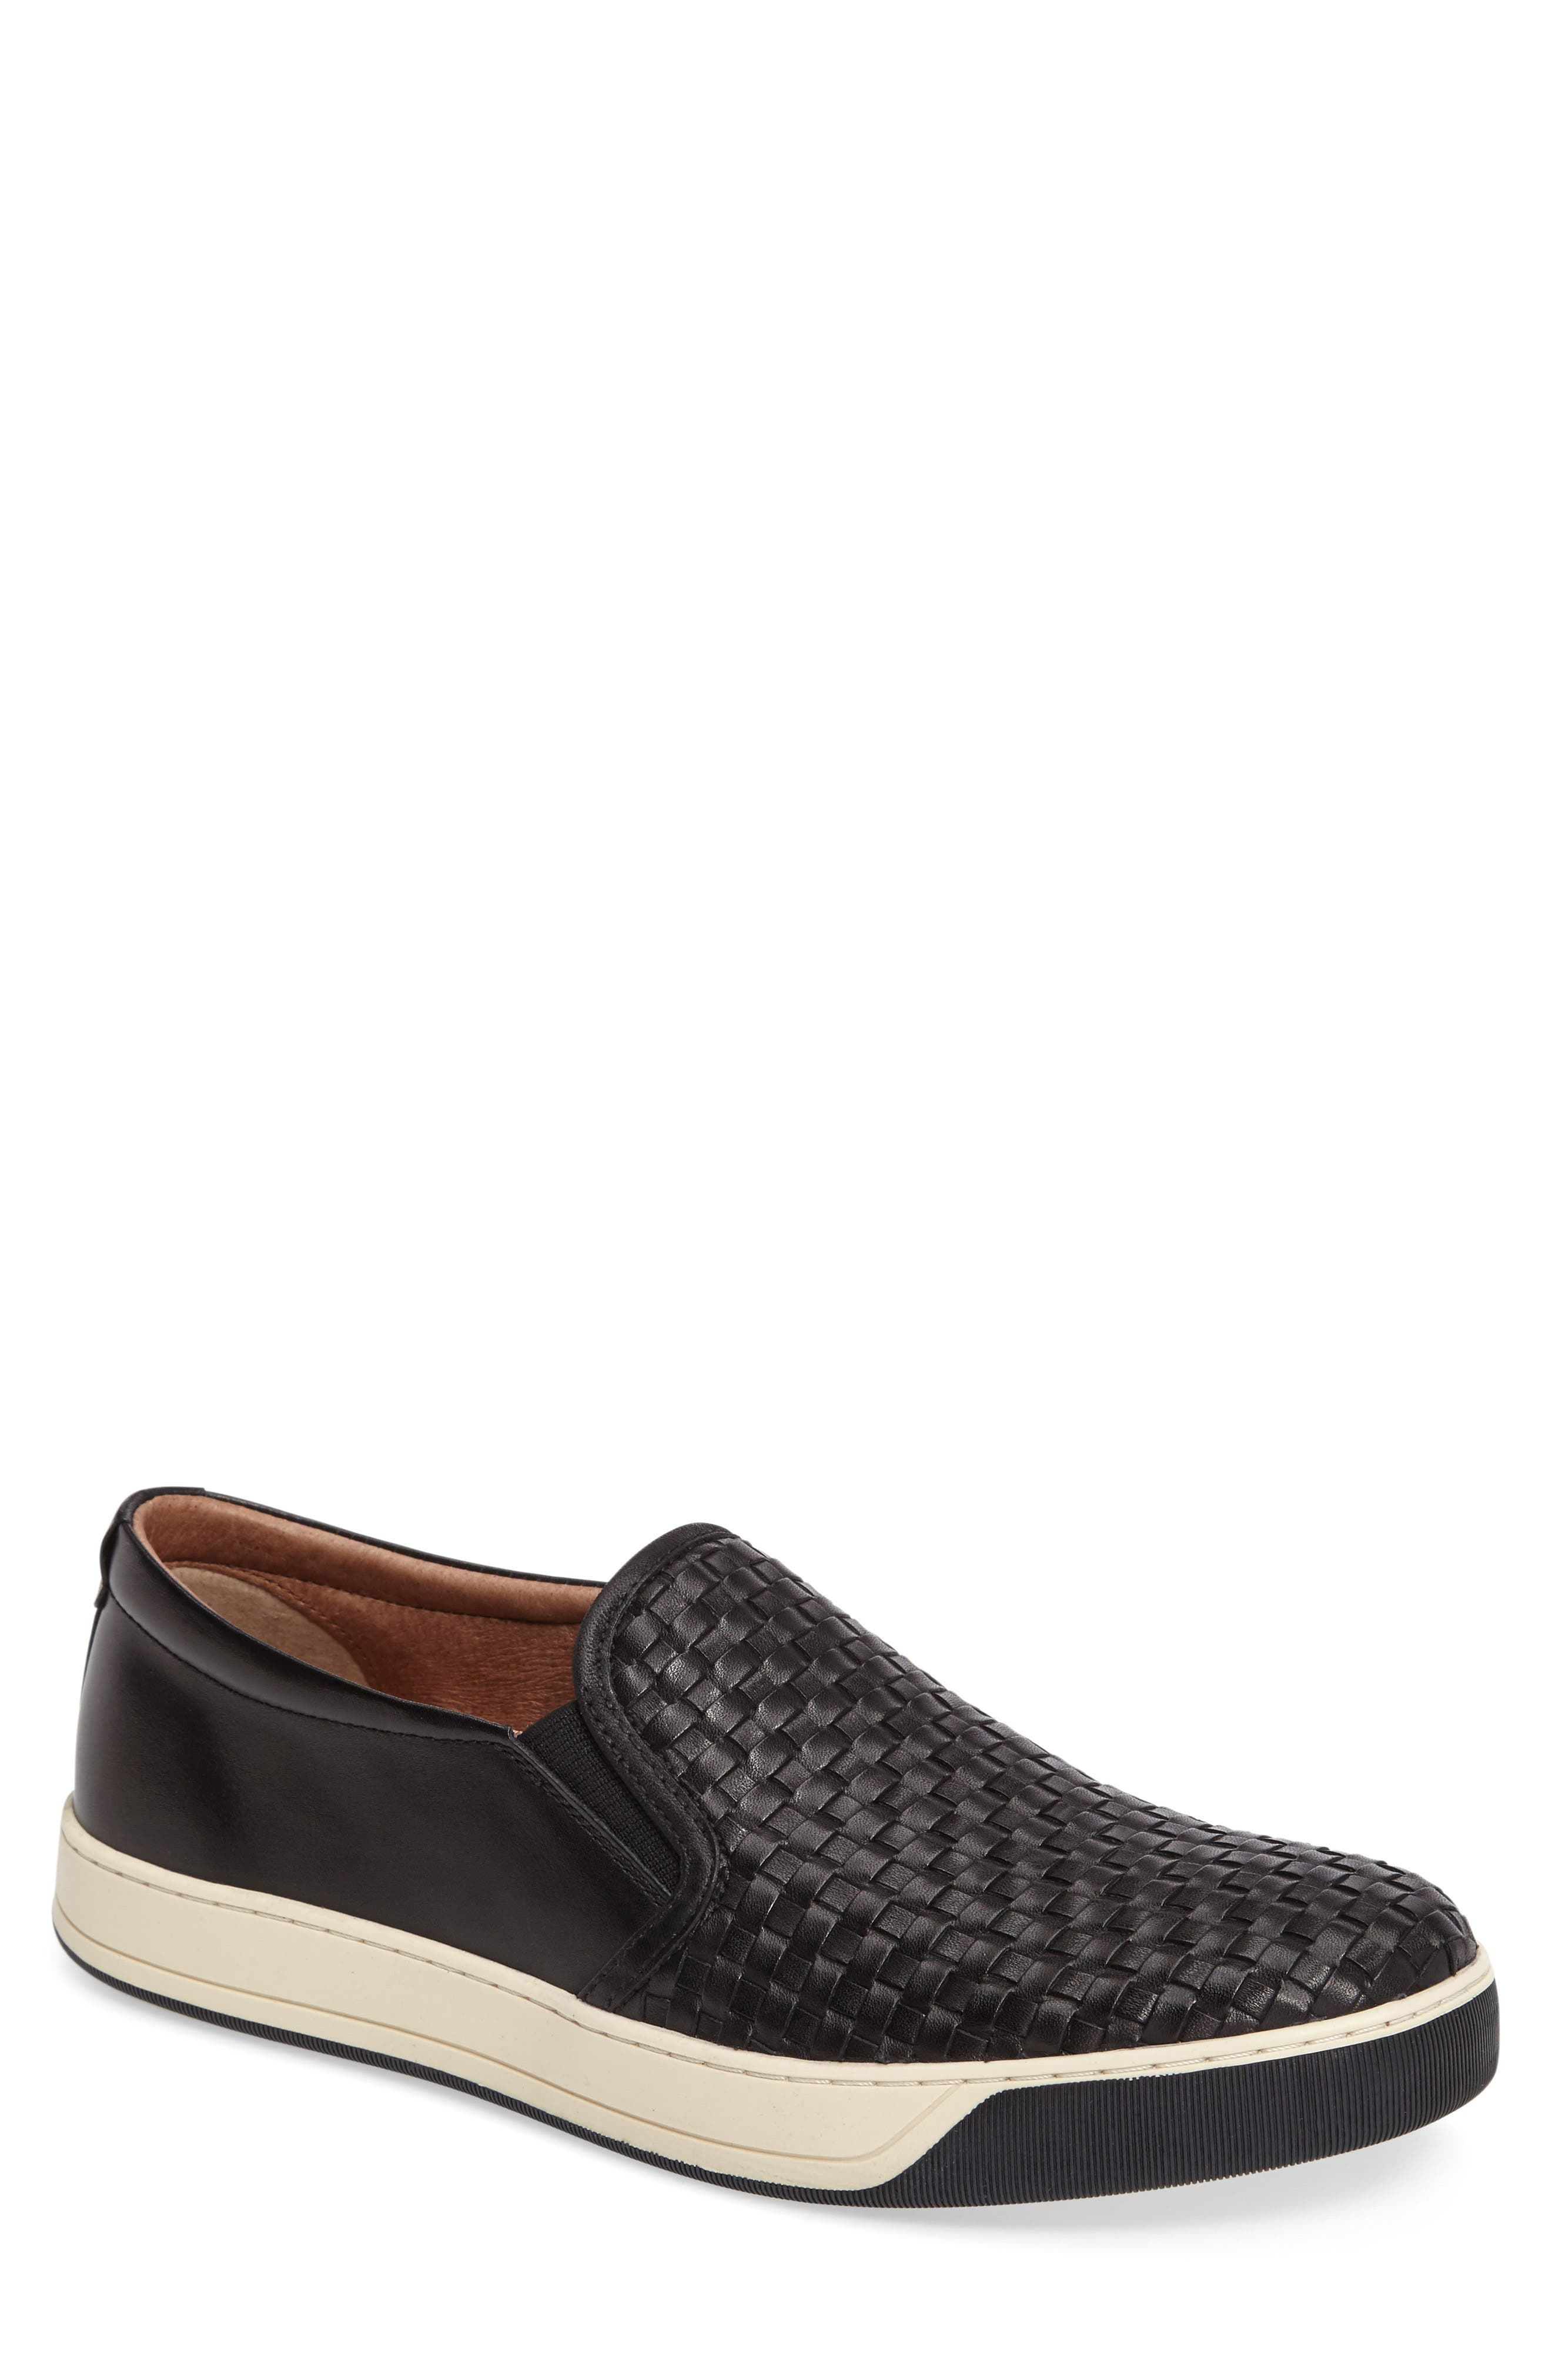 J & m 1850 Allister Slip-On Sneaker